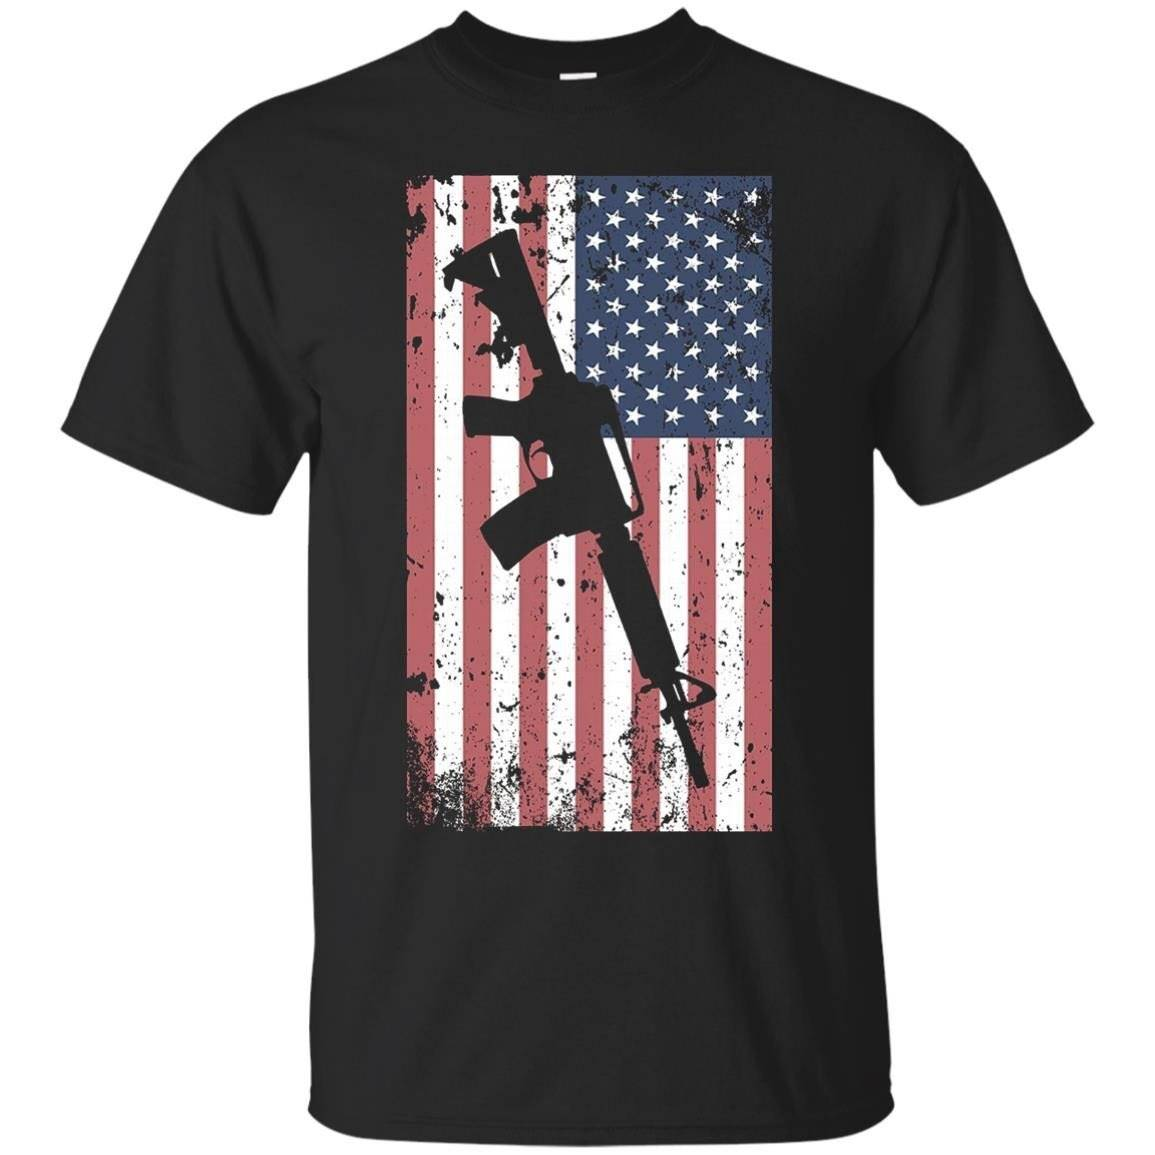 AR-15 Rifle American Flag T-Shirt Distressed Army Gun Tee